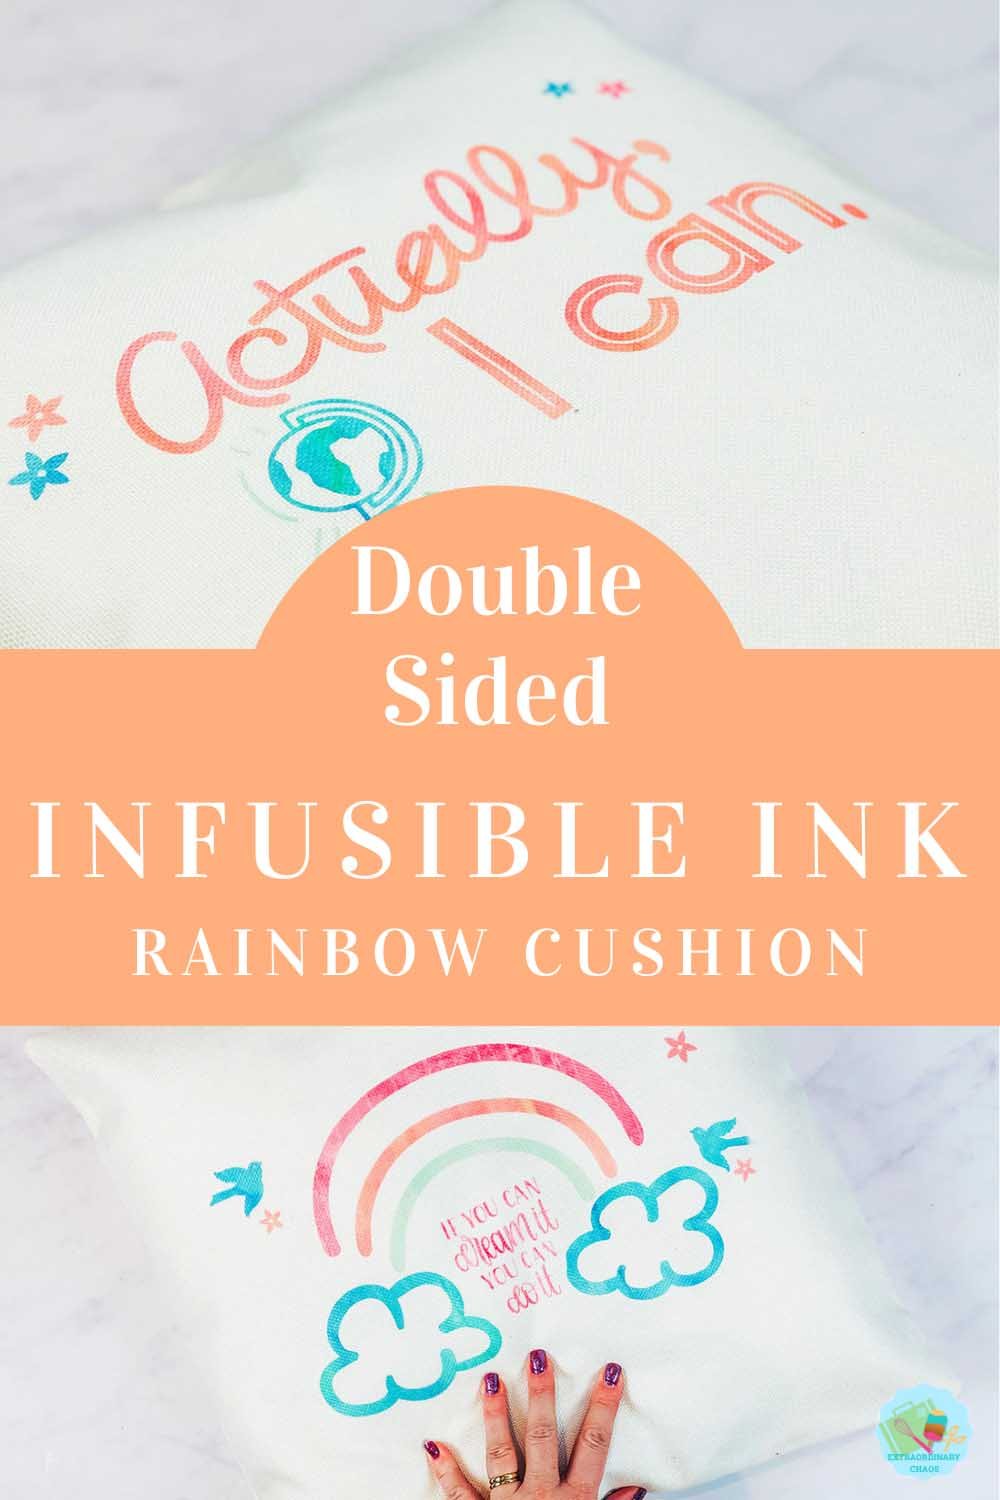 Double Sided Infusible Ink Rainbow Cushion